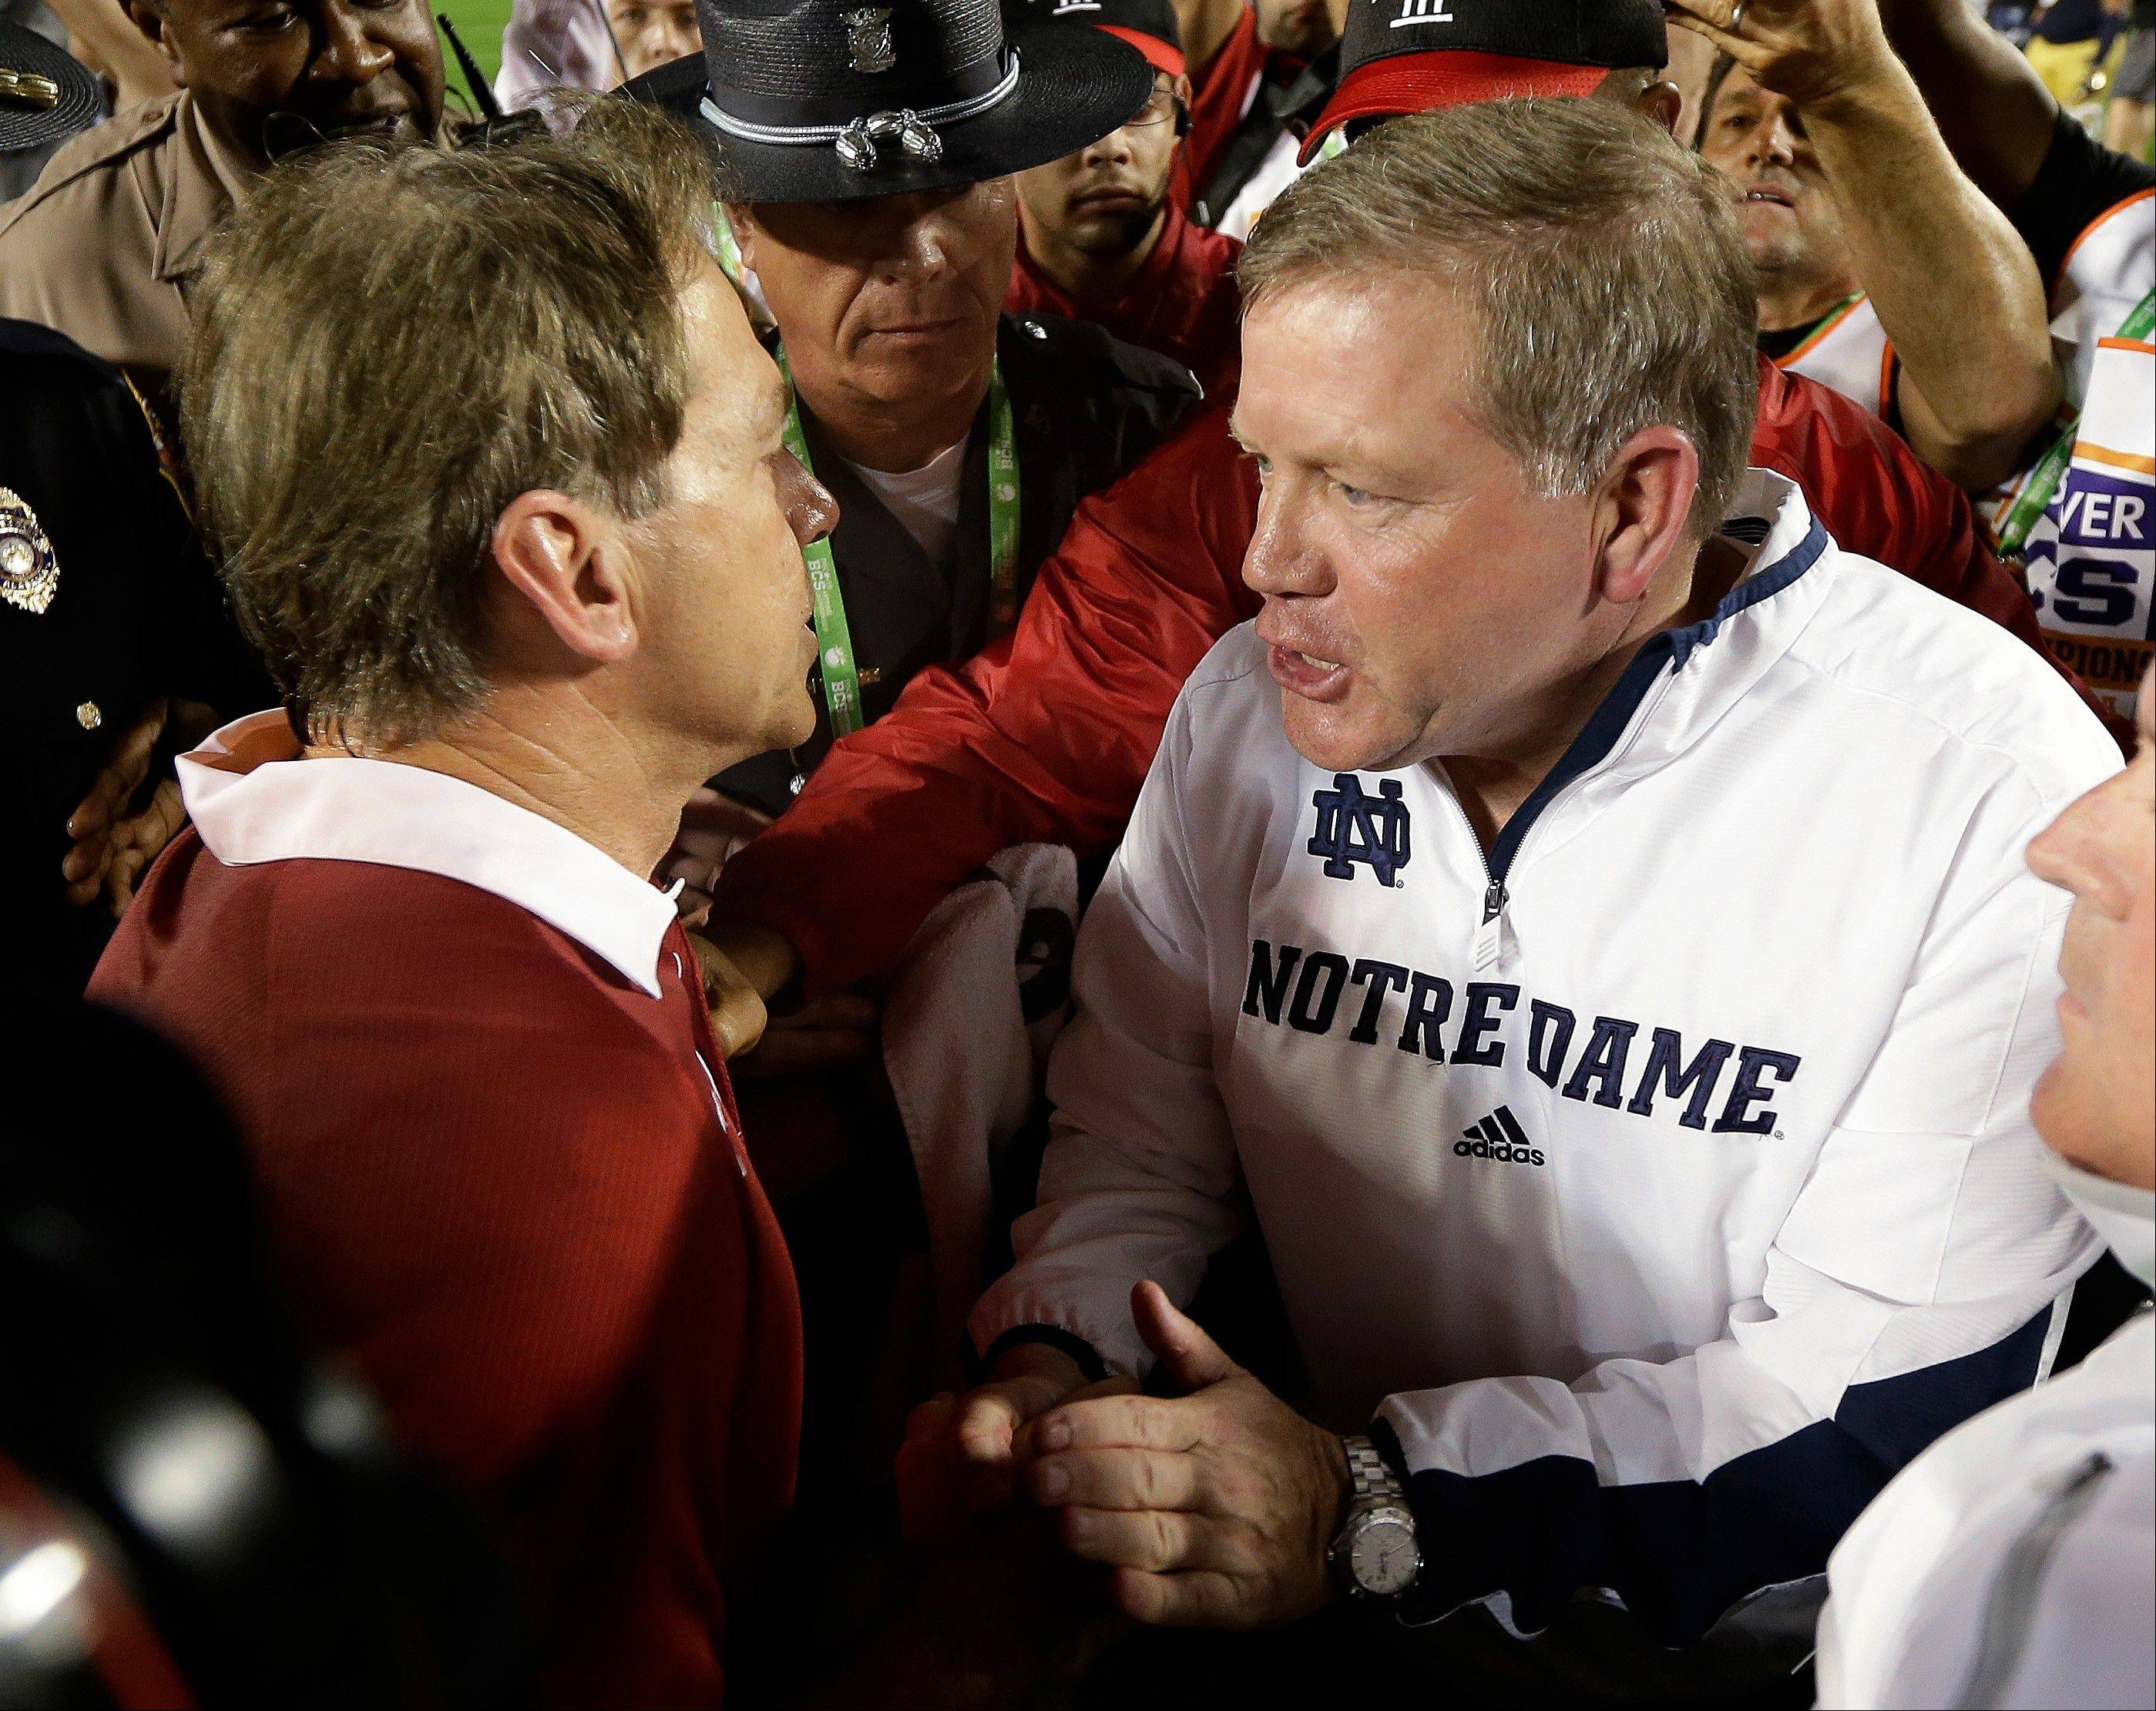 Alabama head coach Nick Saban shakes hands with Notre Dame head coach Brian Kelly after the BCS National Championship college football game Monday, Jan. 7, 2013, in Miami. Alabama won 42-14.